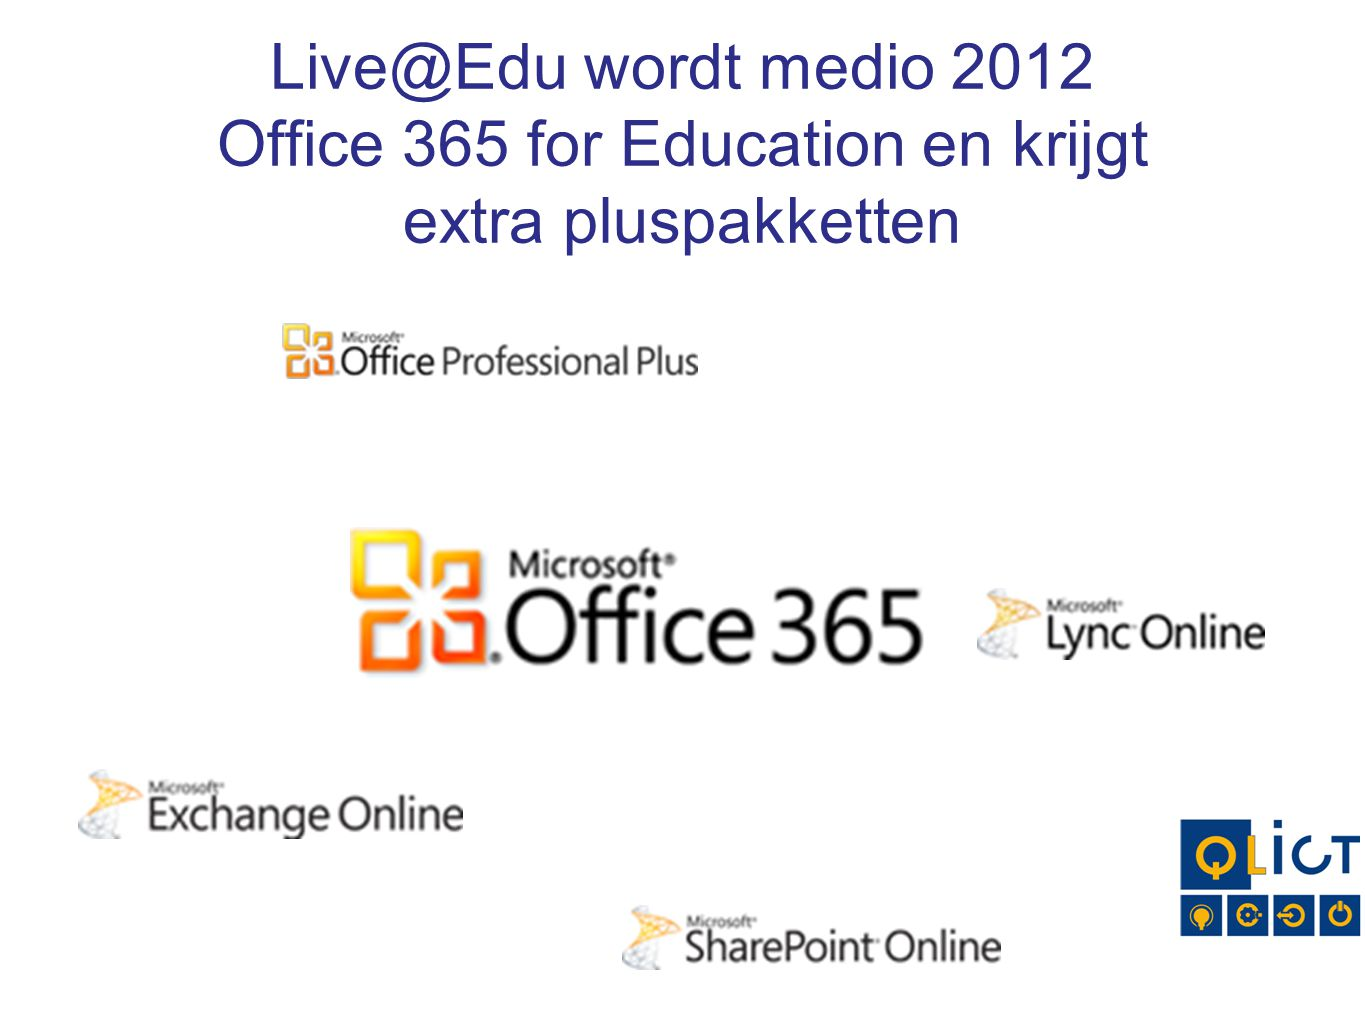 wordt medio 2012 Office 365 for Education en krijgt extra pluspakketten